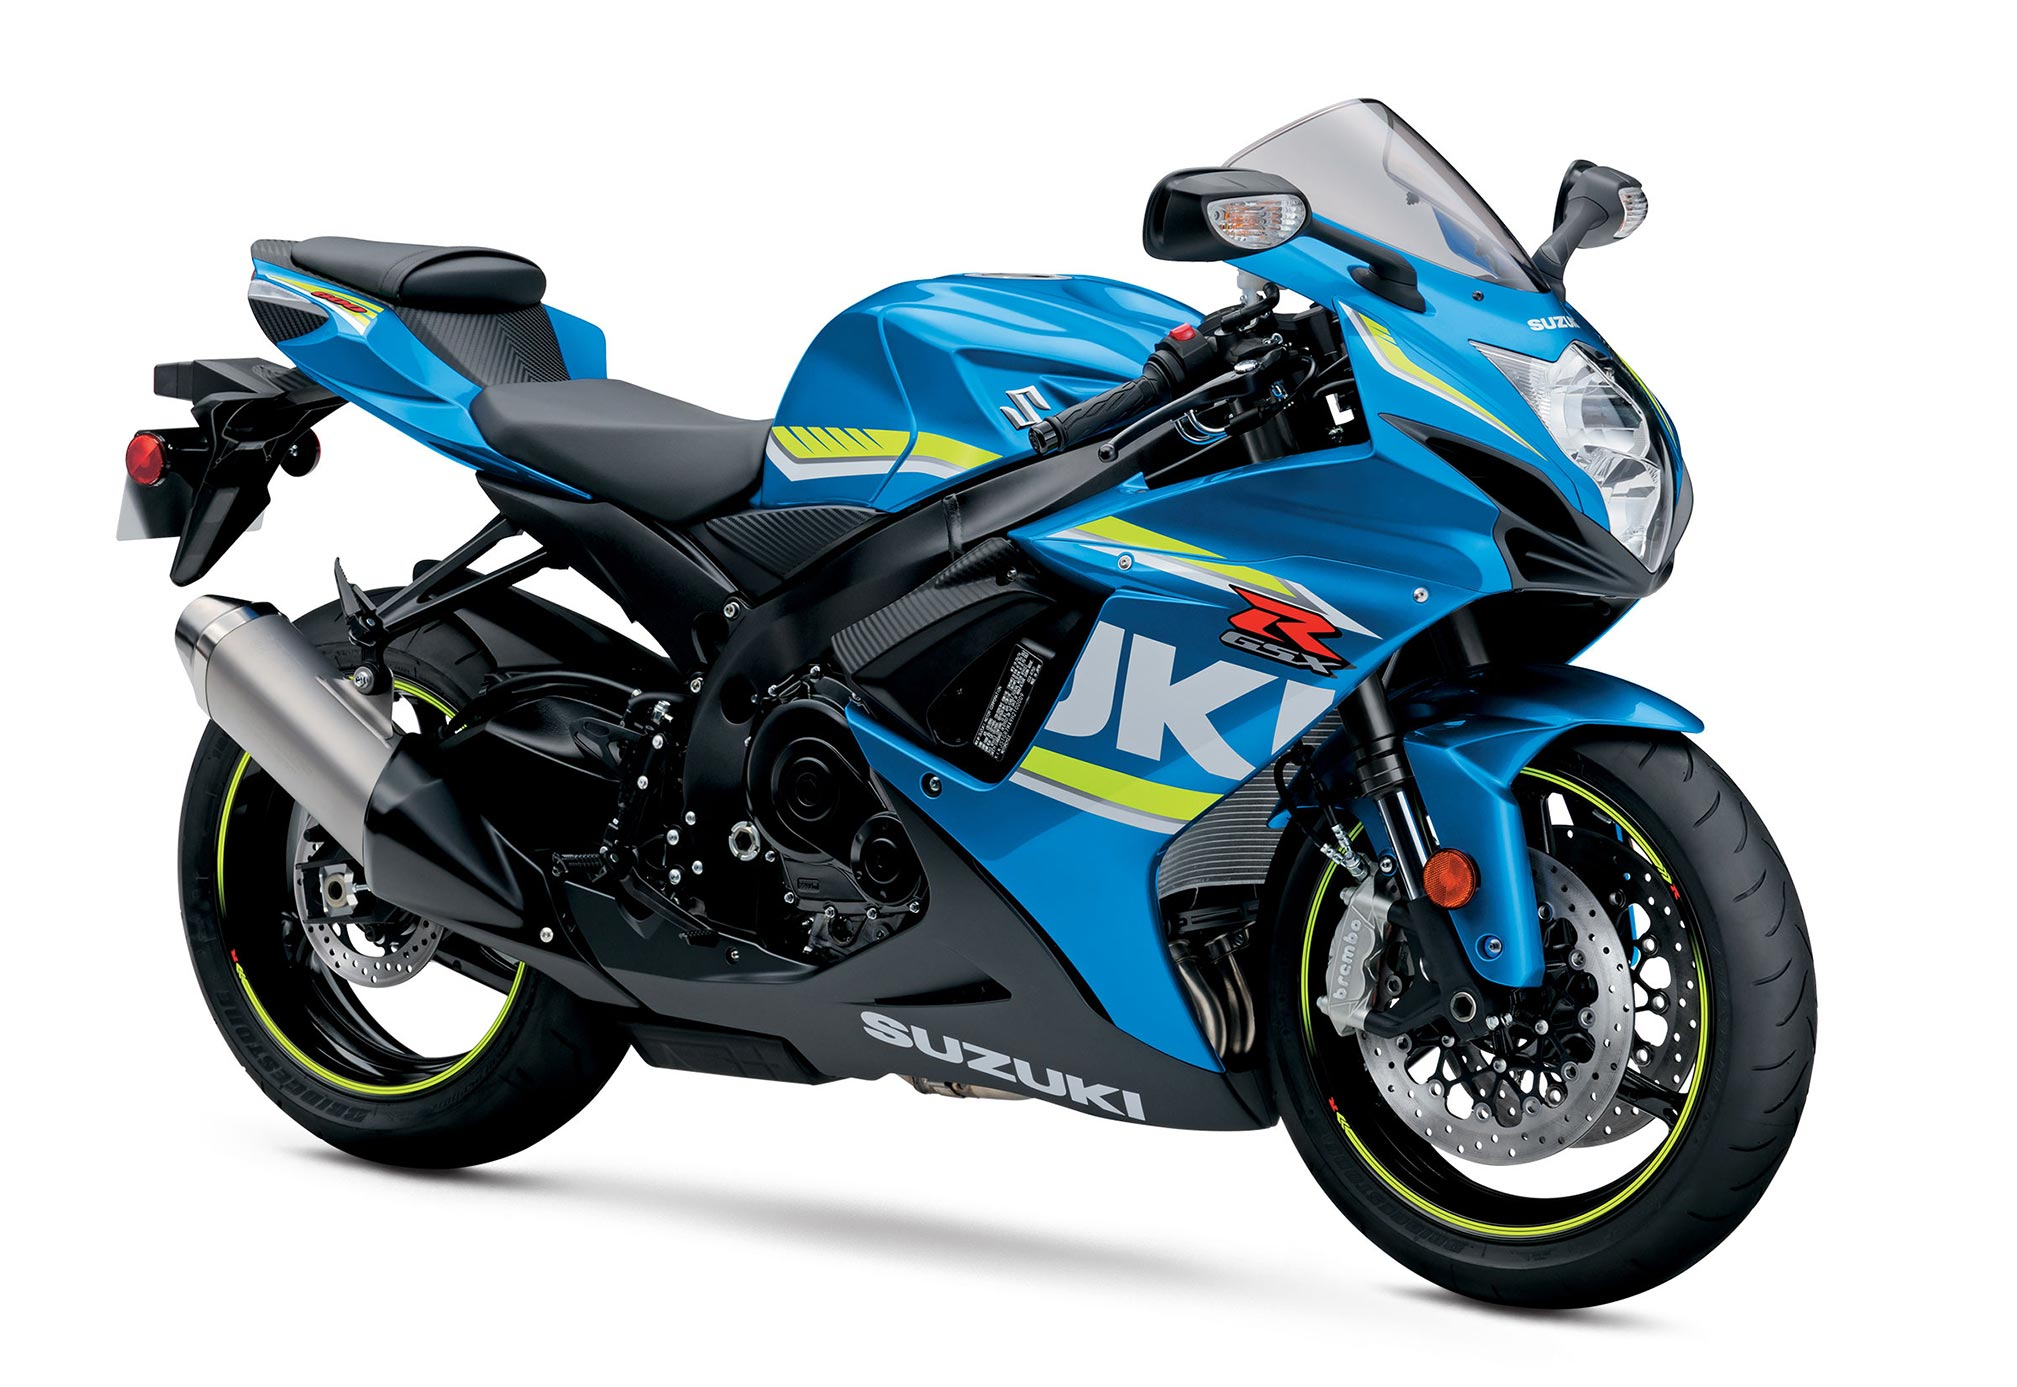 Suzuki gsx-r photo - 7